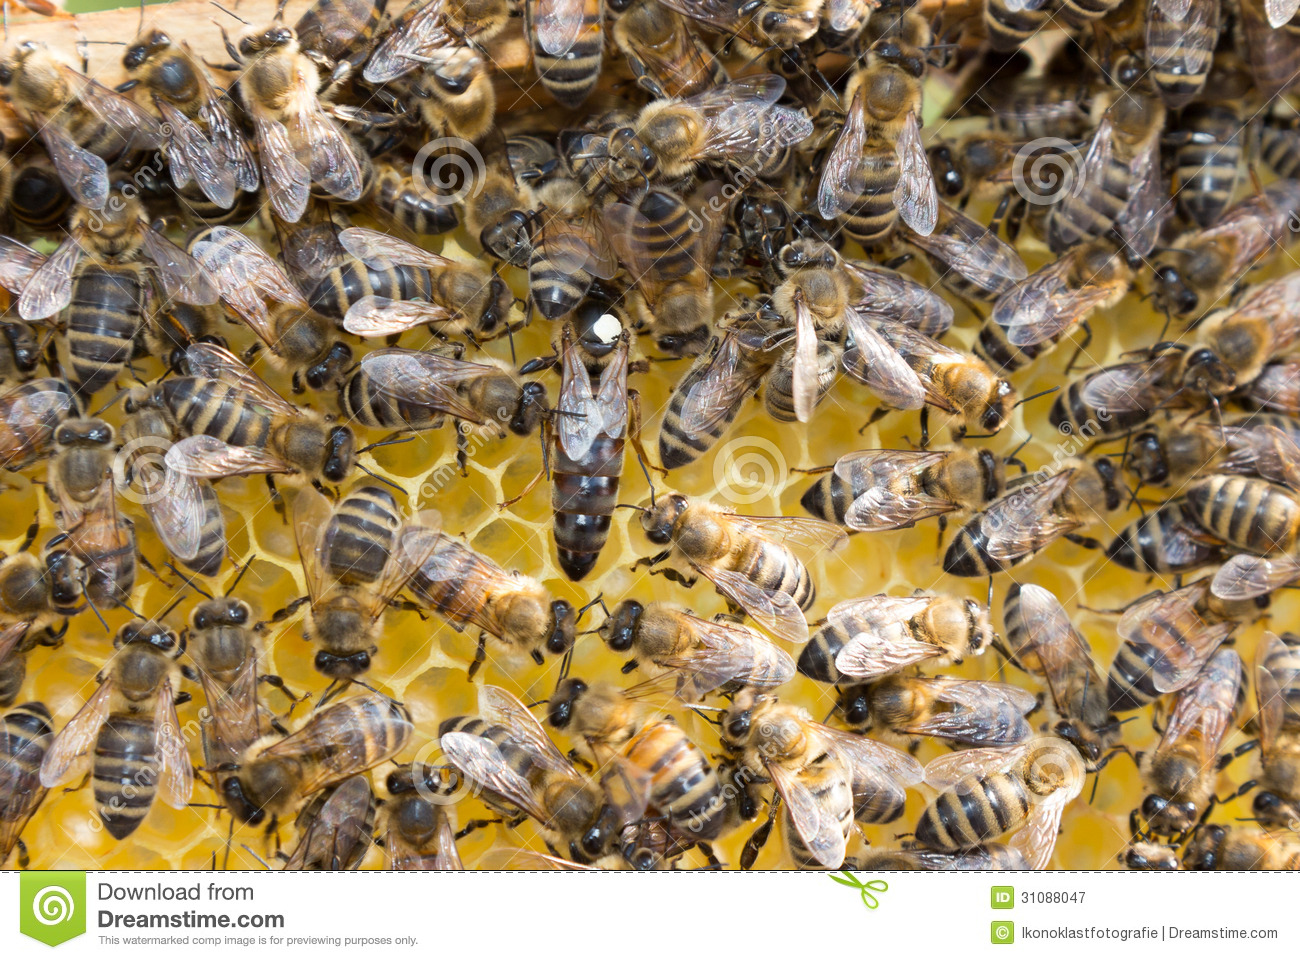 Queen Bee In Bee Hive Laying Eggs Royalty Free Stock Photography - Image: 31088047